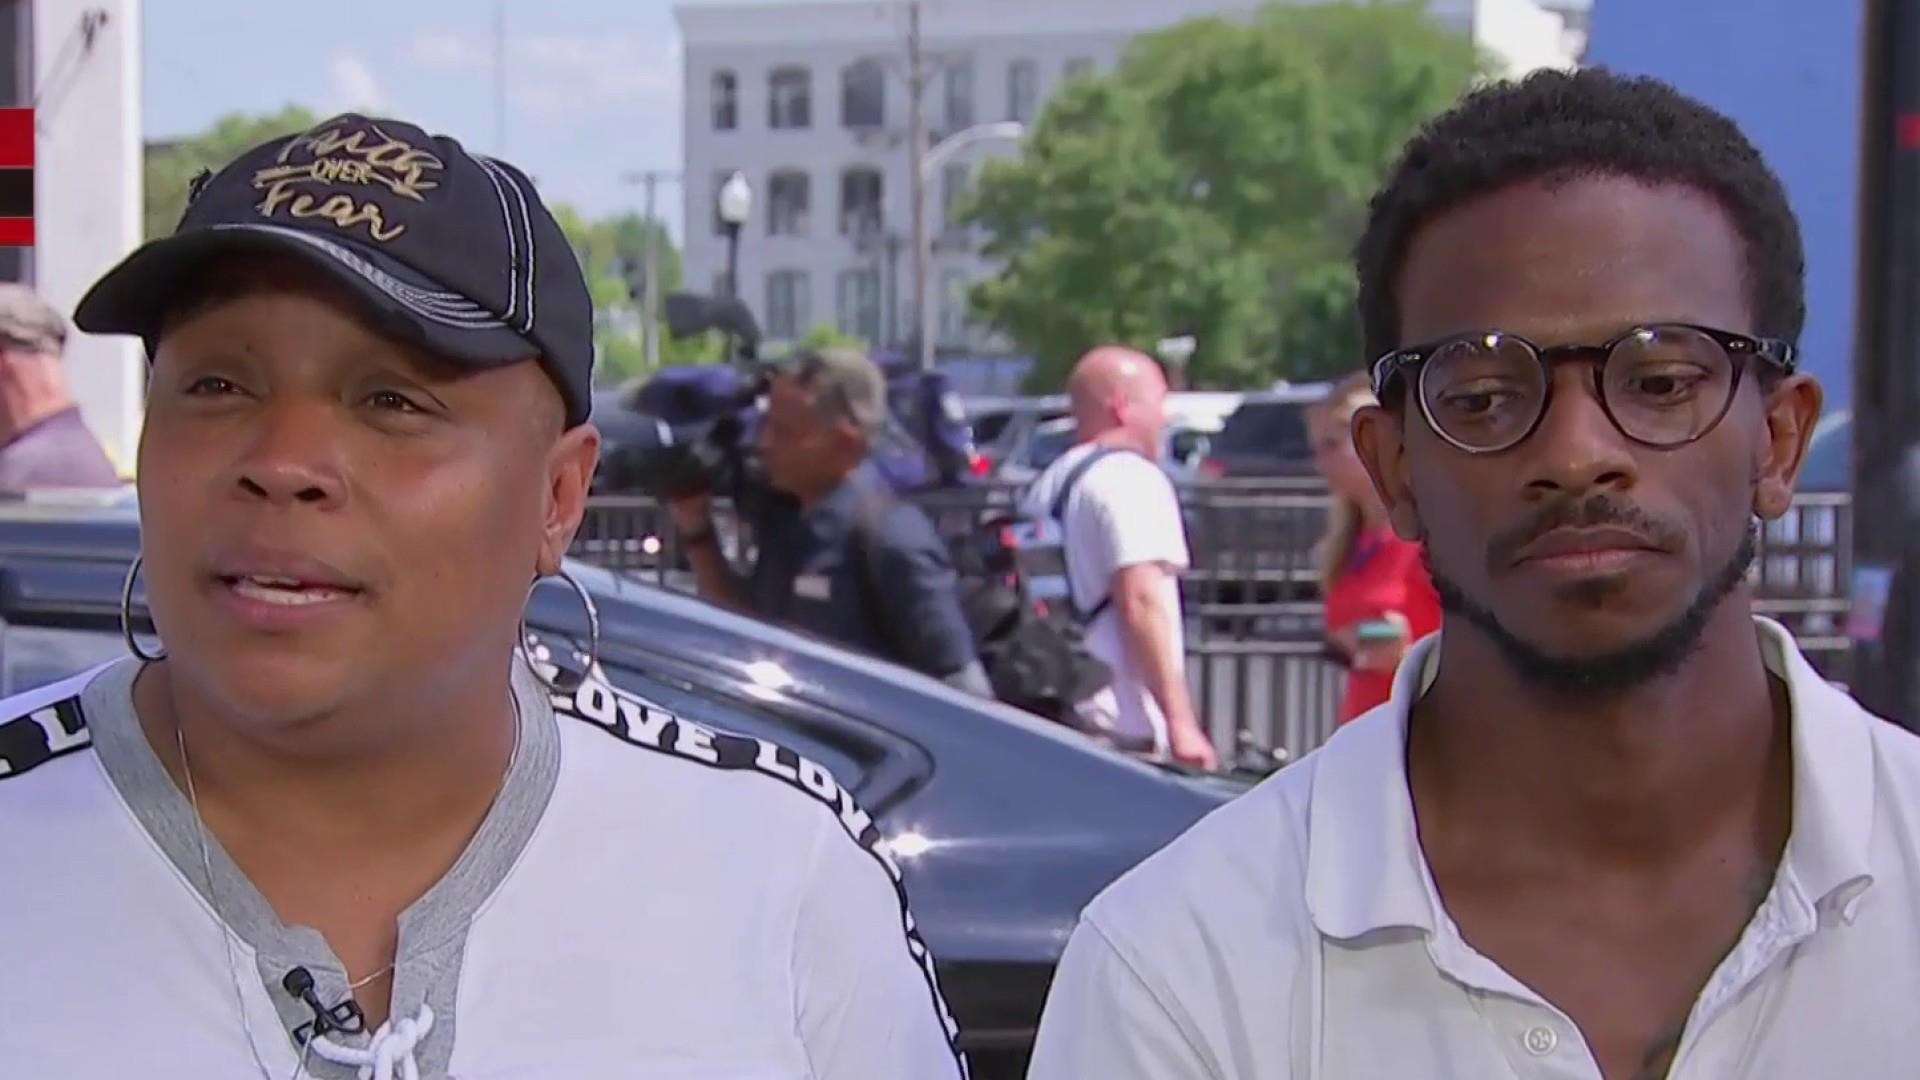 Family members speak on those lost in Dayton shooting: They were 'sharing, caring, loving' people